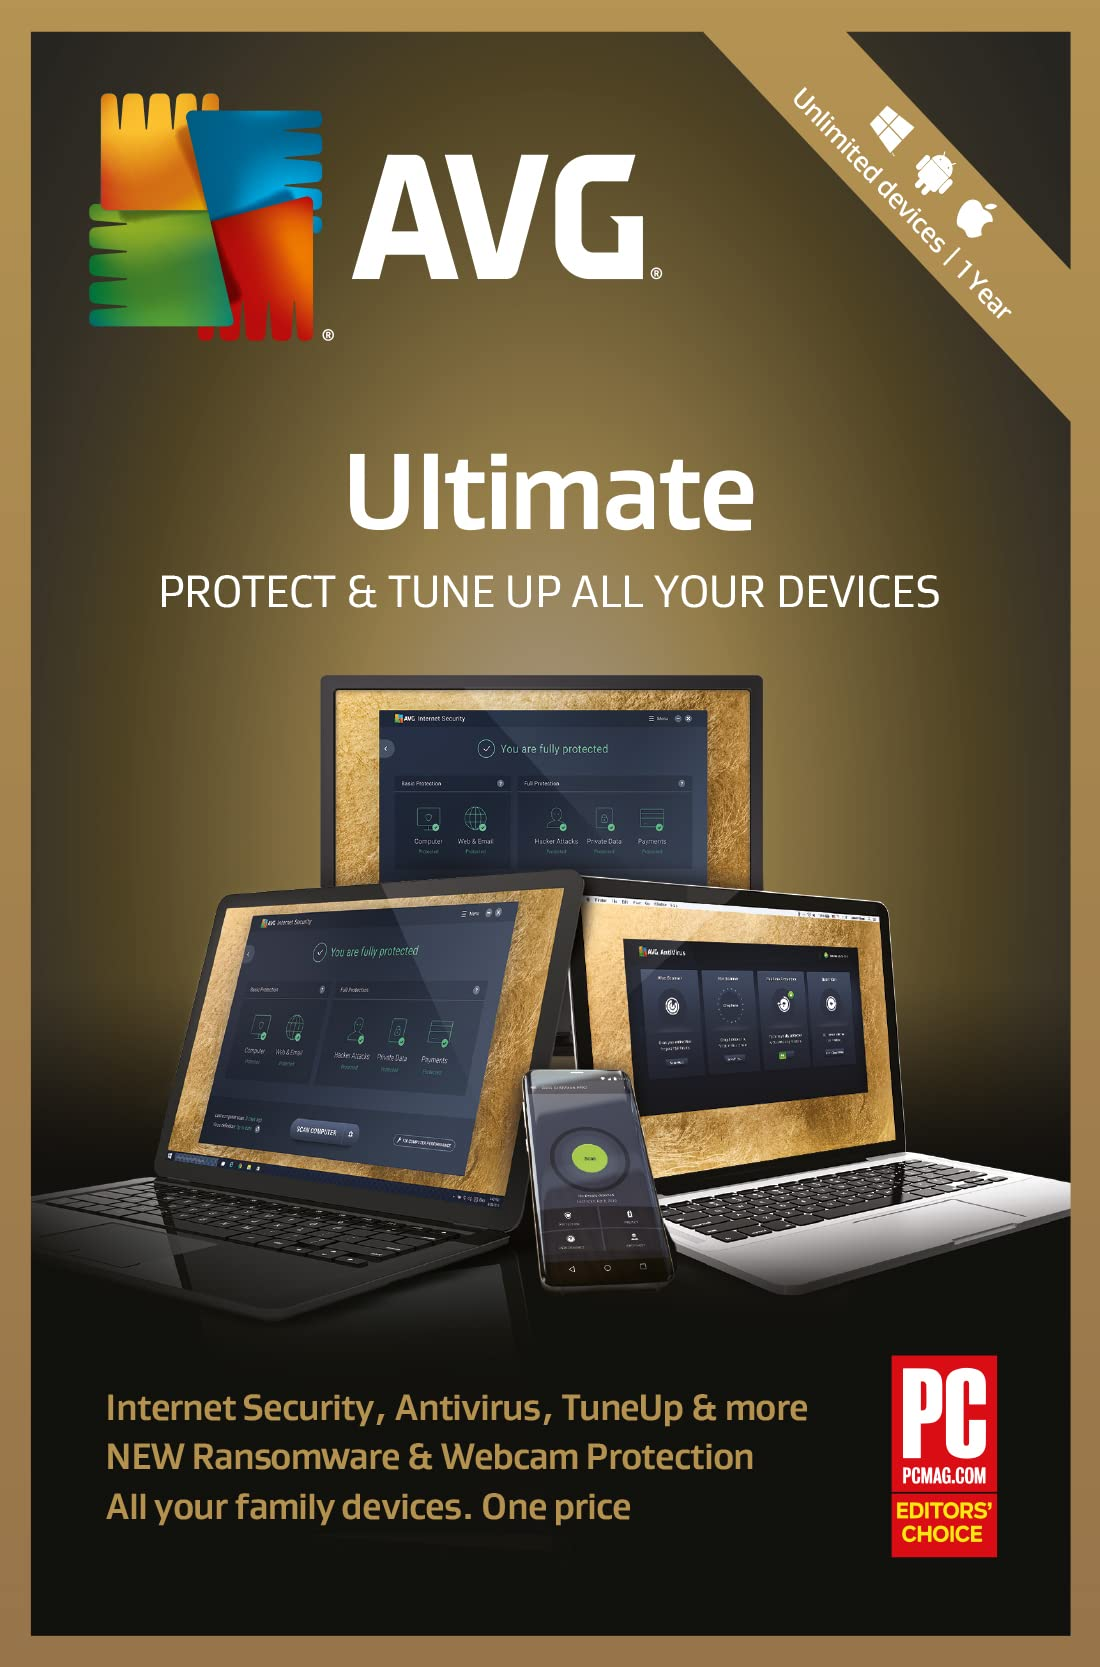 AVG Ultimate Security 2 Years 7 PACKS Unlimited Devices PC Mac Android